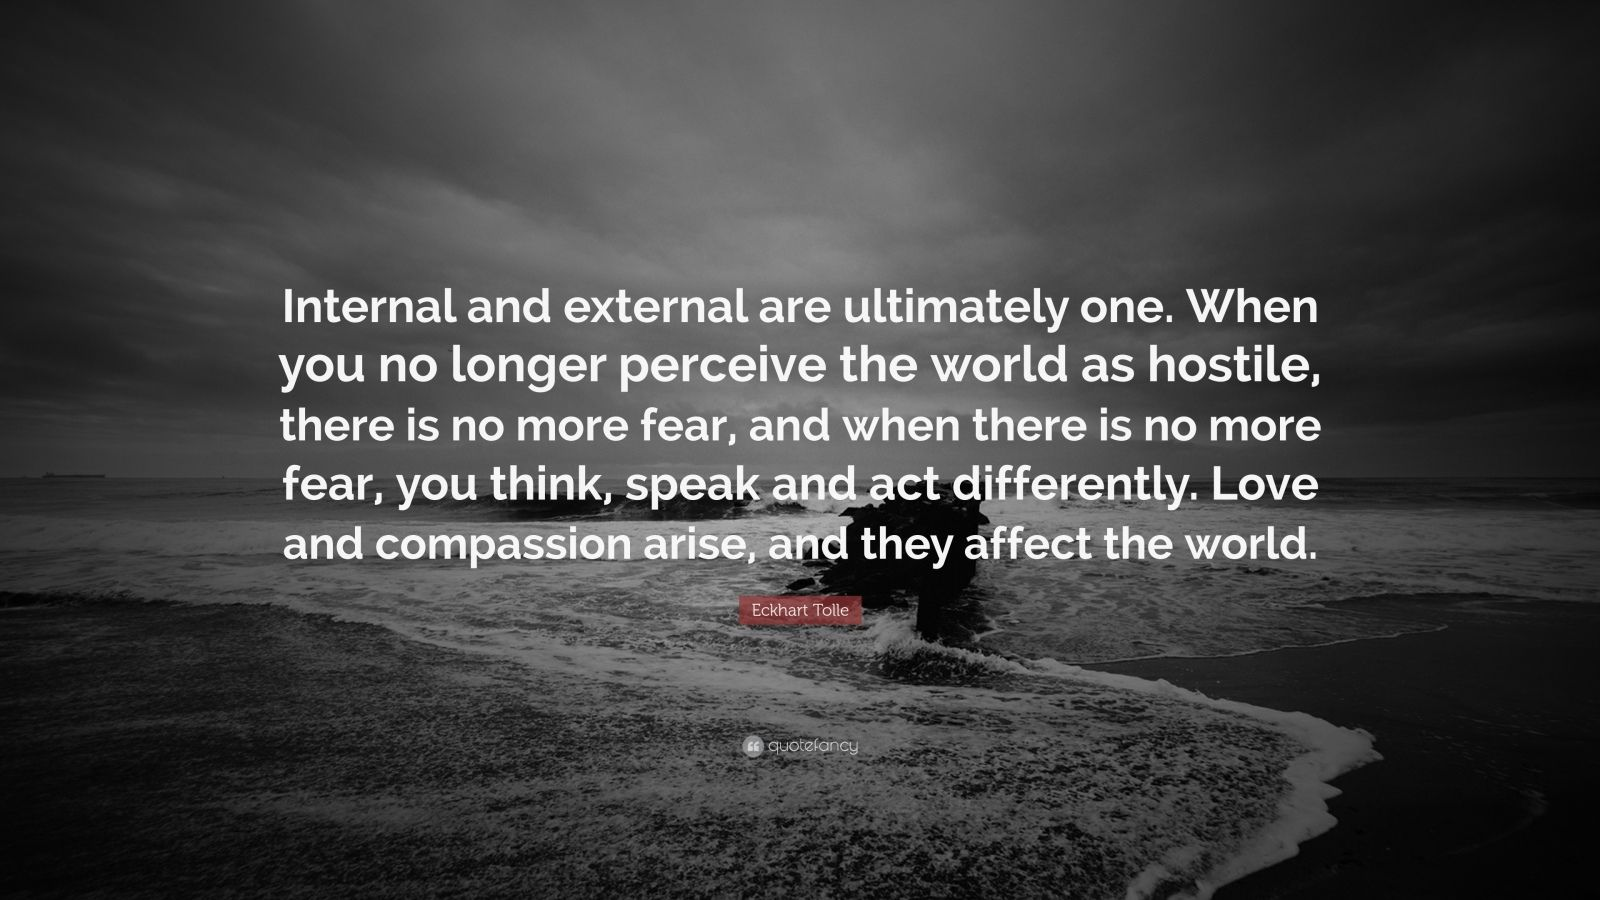 """Eckhart Tolle Quote: """"Internal and external are ultimately one. When you no longer perceive the world as hostile, there is no more fear, and when there is no more fear, you think, speak and act differently. Love and compassion arise, and they affect the world."""""""